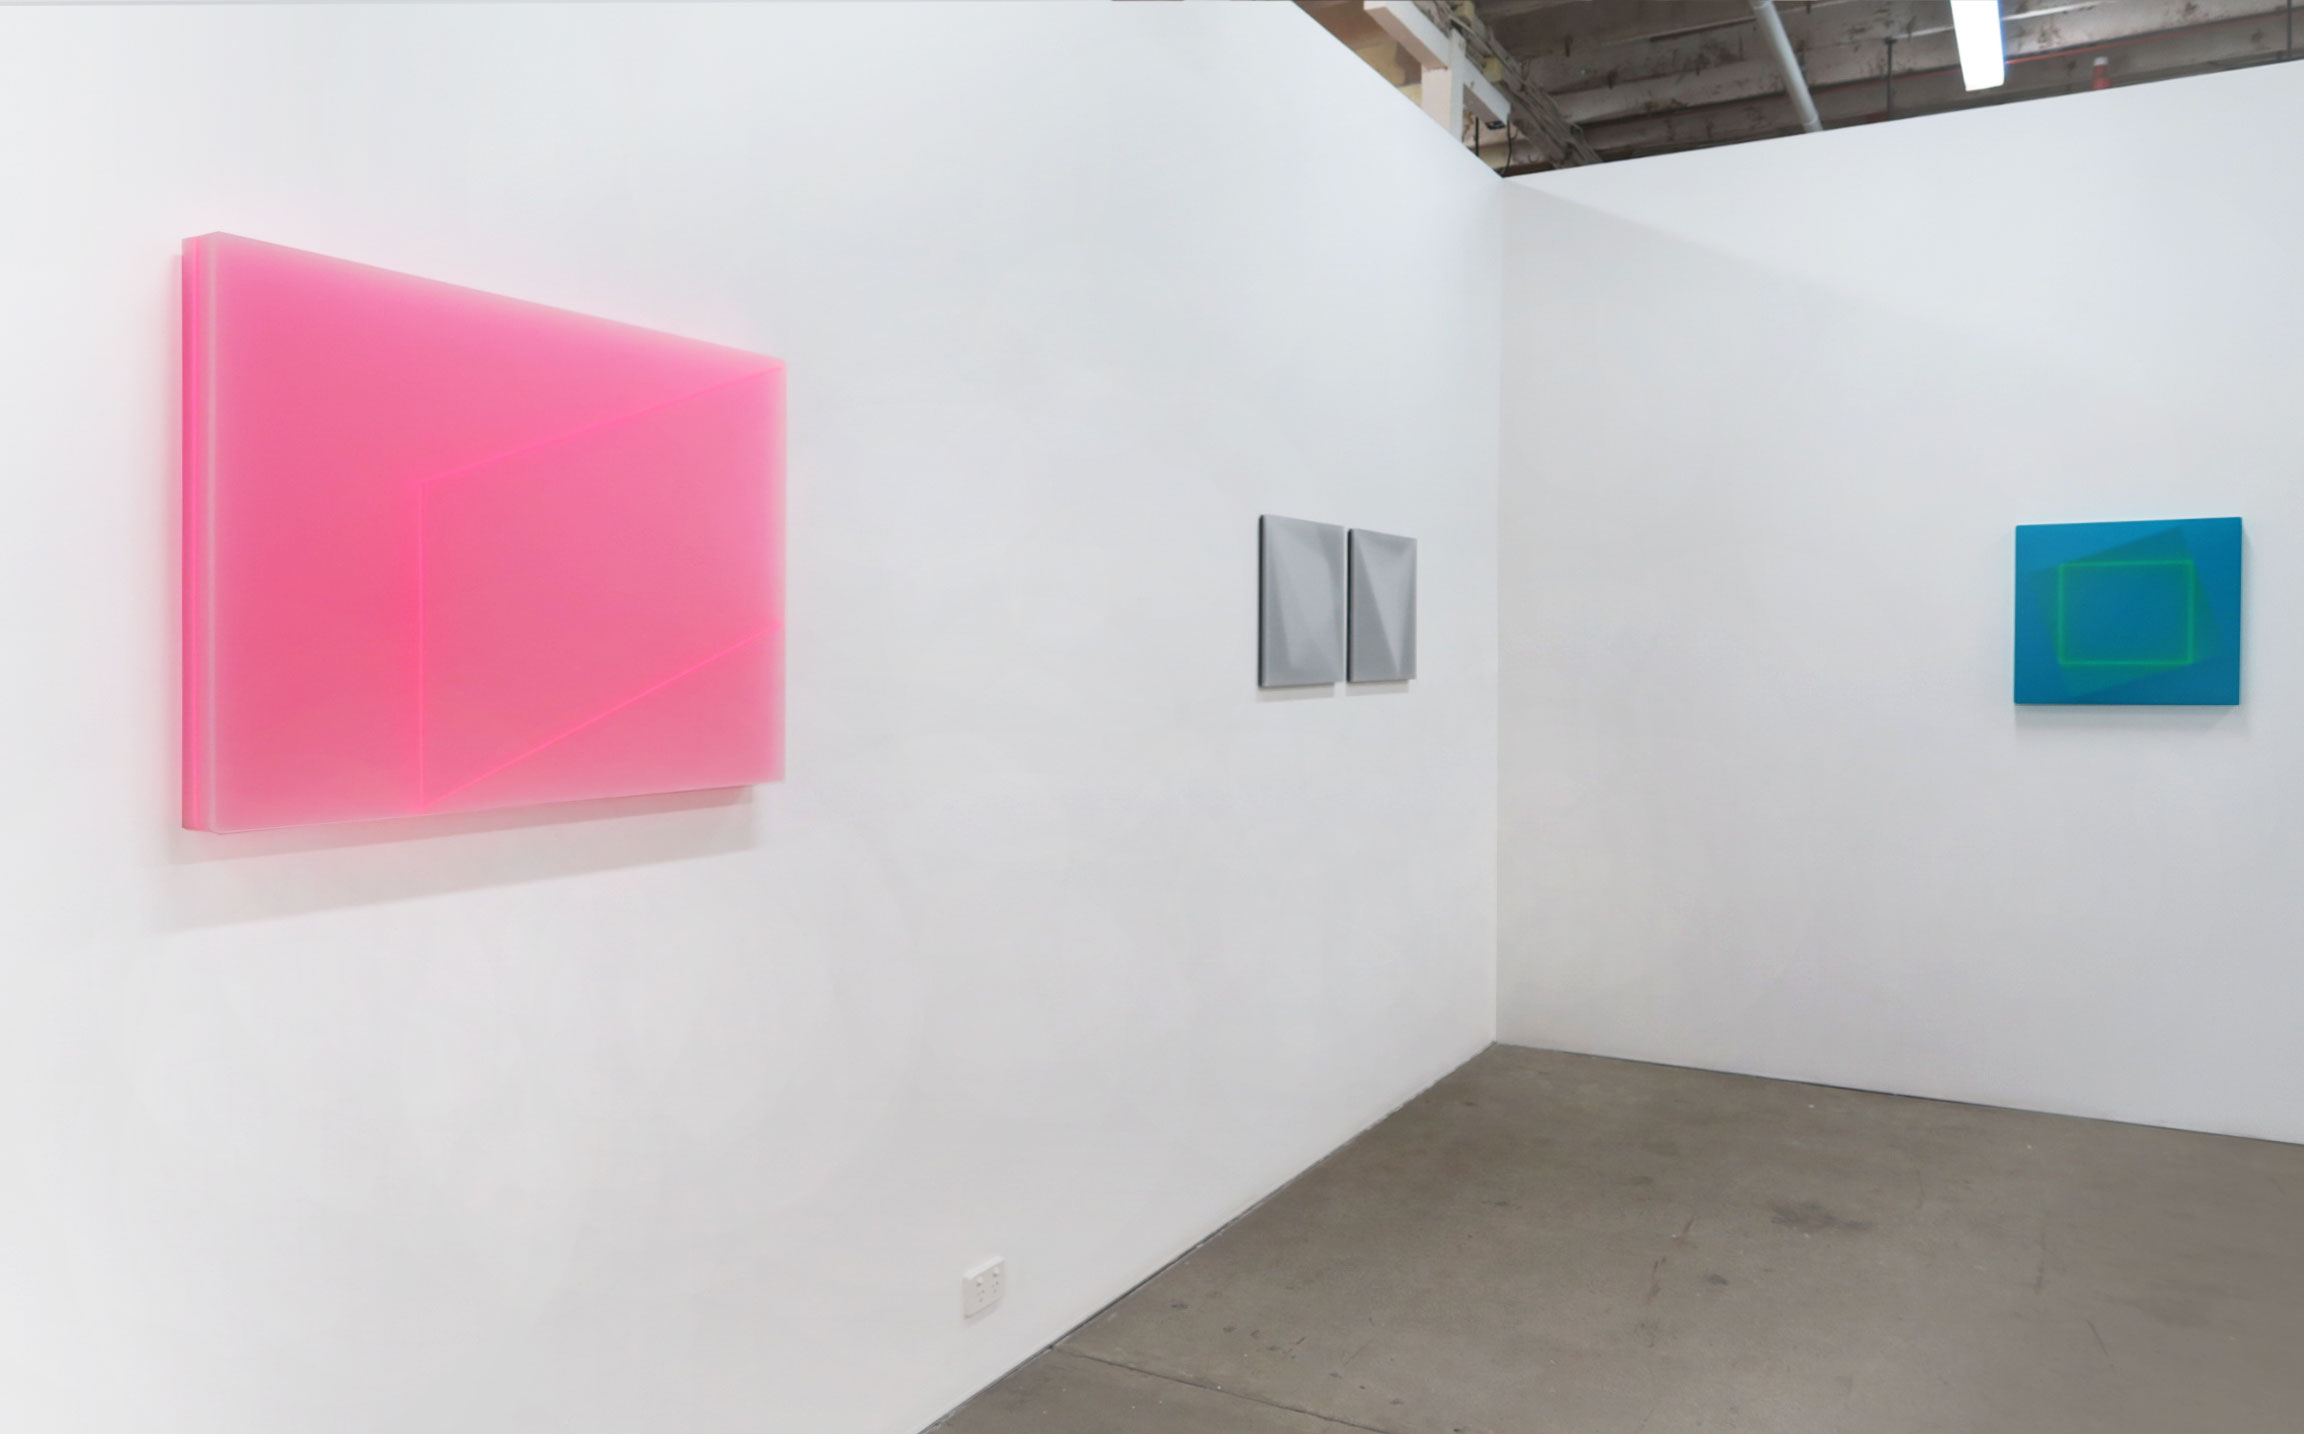 Implicate Order ,2017, installation view